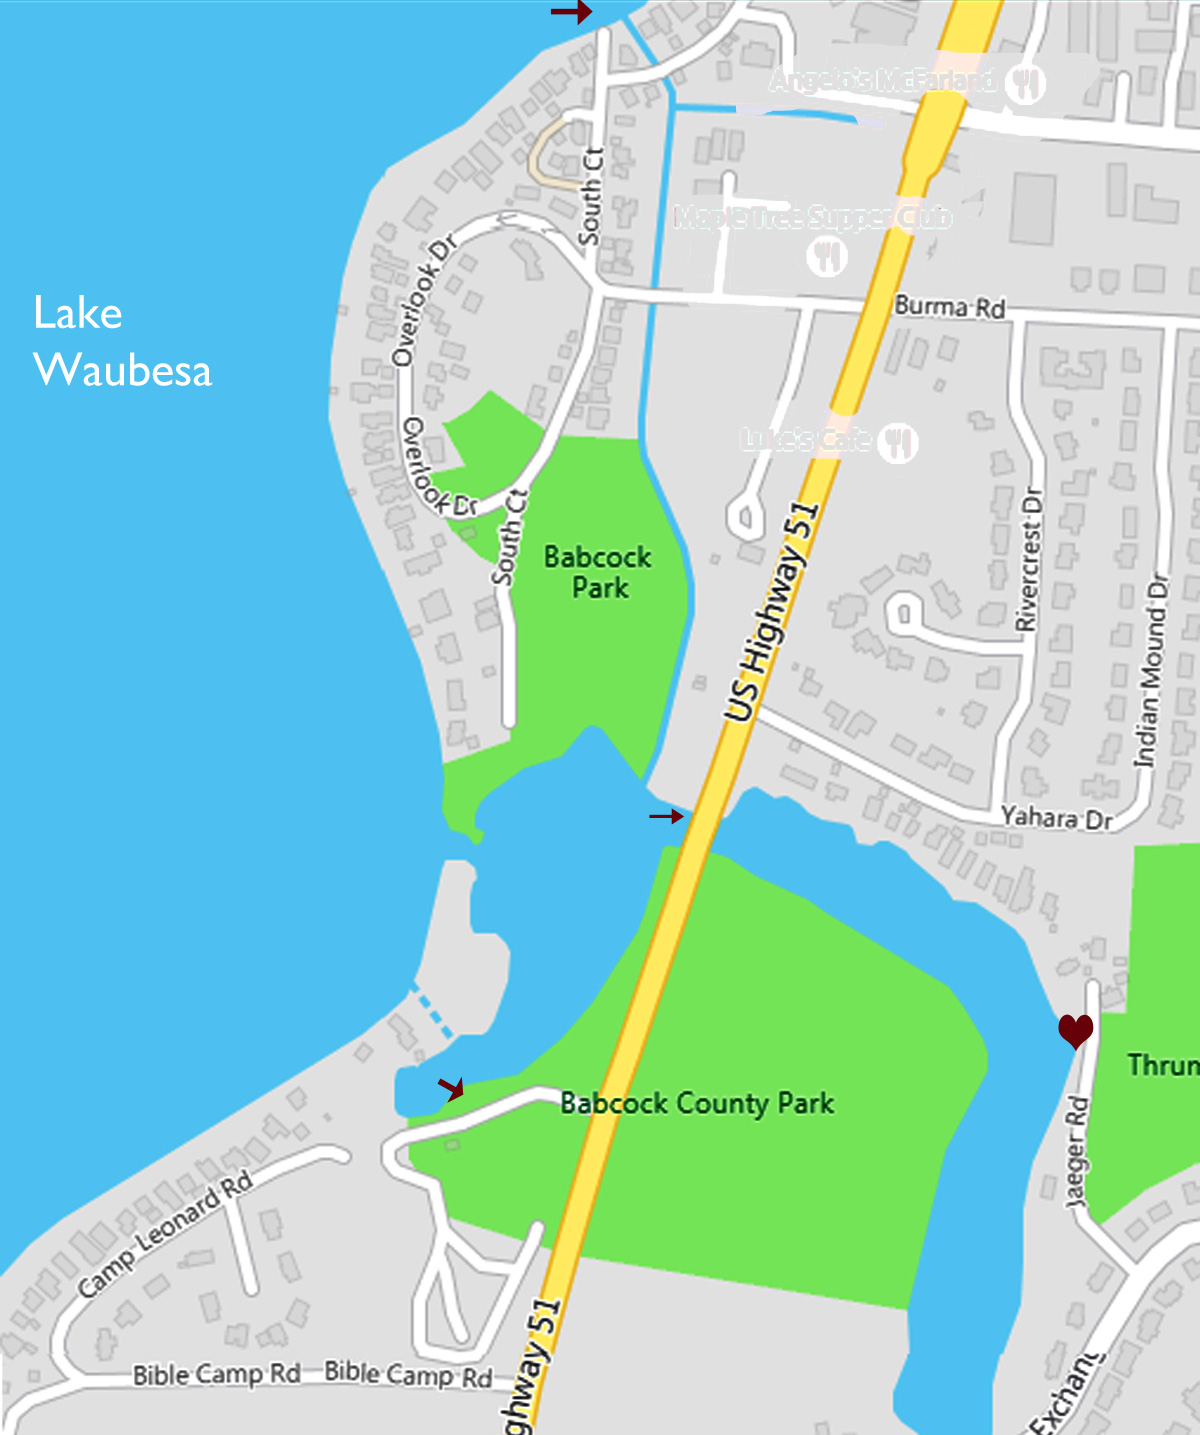 Map of Babcock park area